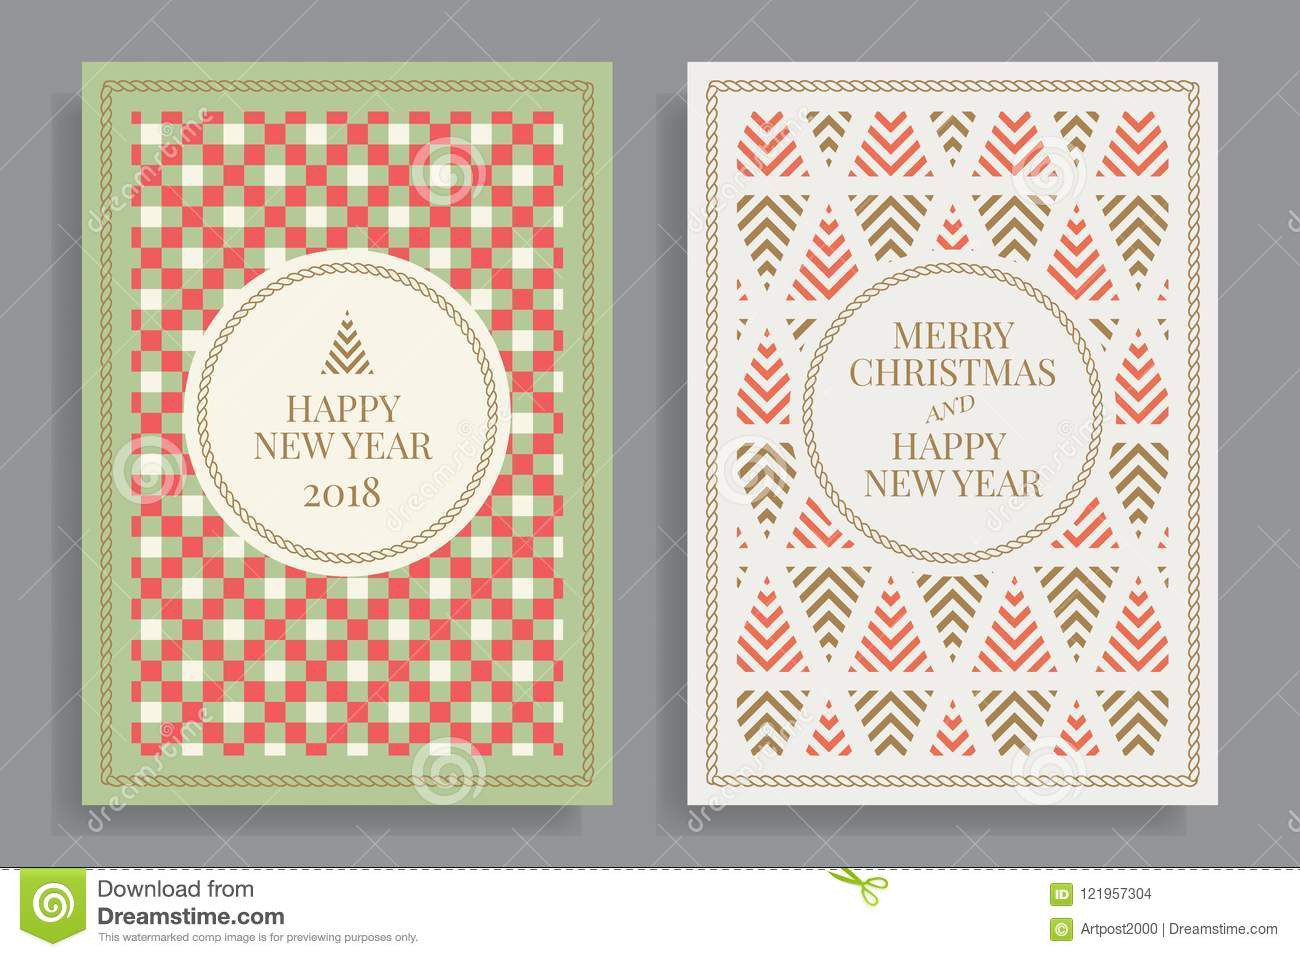 merry christmas and happy new year elegant template for postcards invitations posters banners vector illustration eps 10